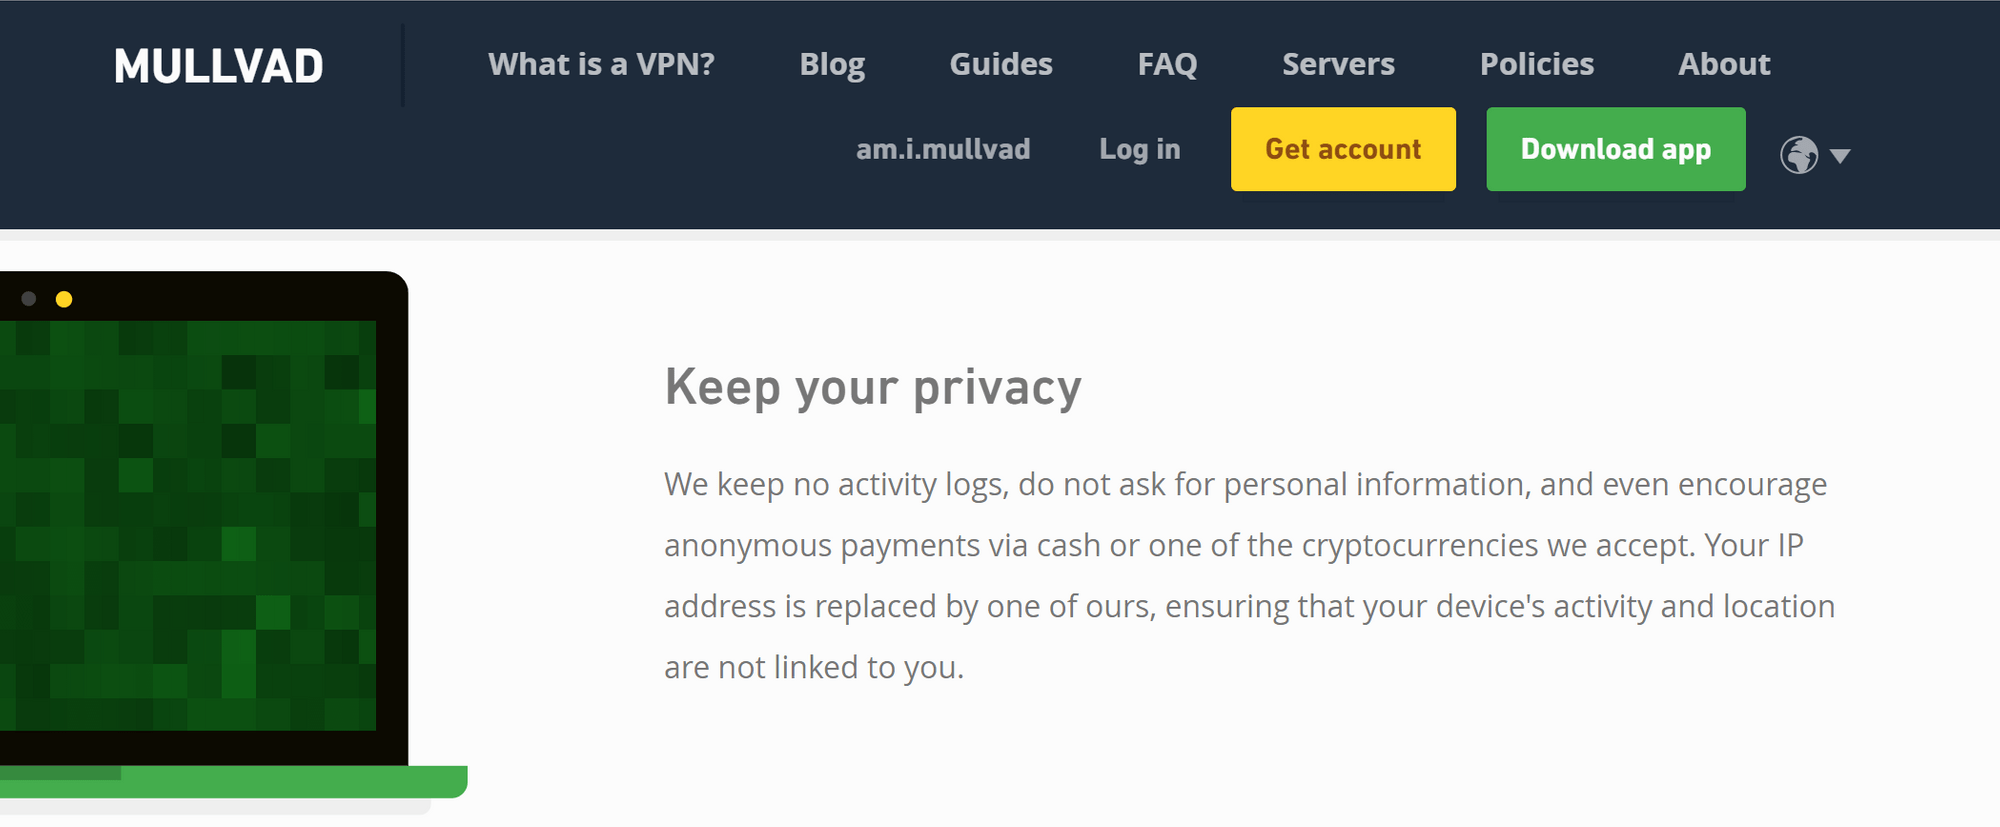 How Much Does a VPN Cost? And Are VPNs Safe? - WordPress ...